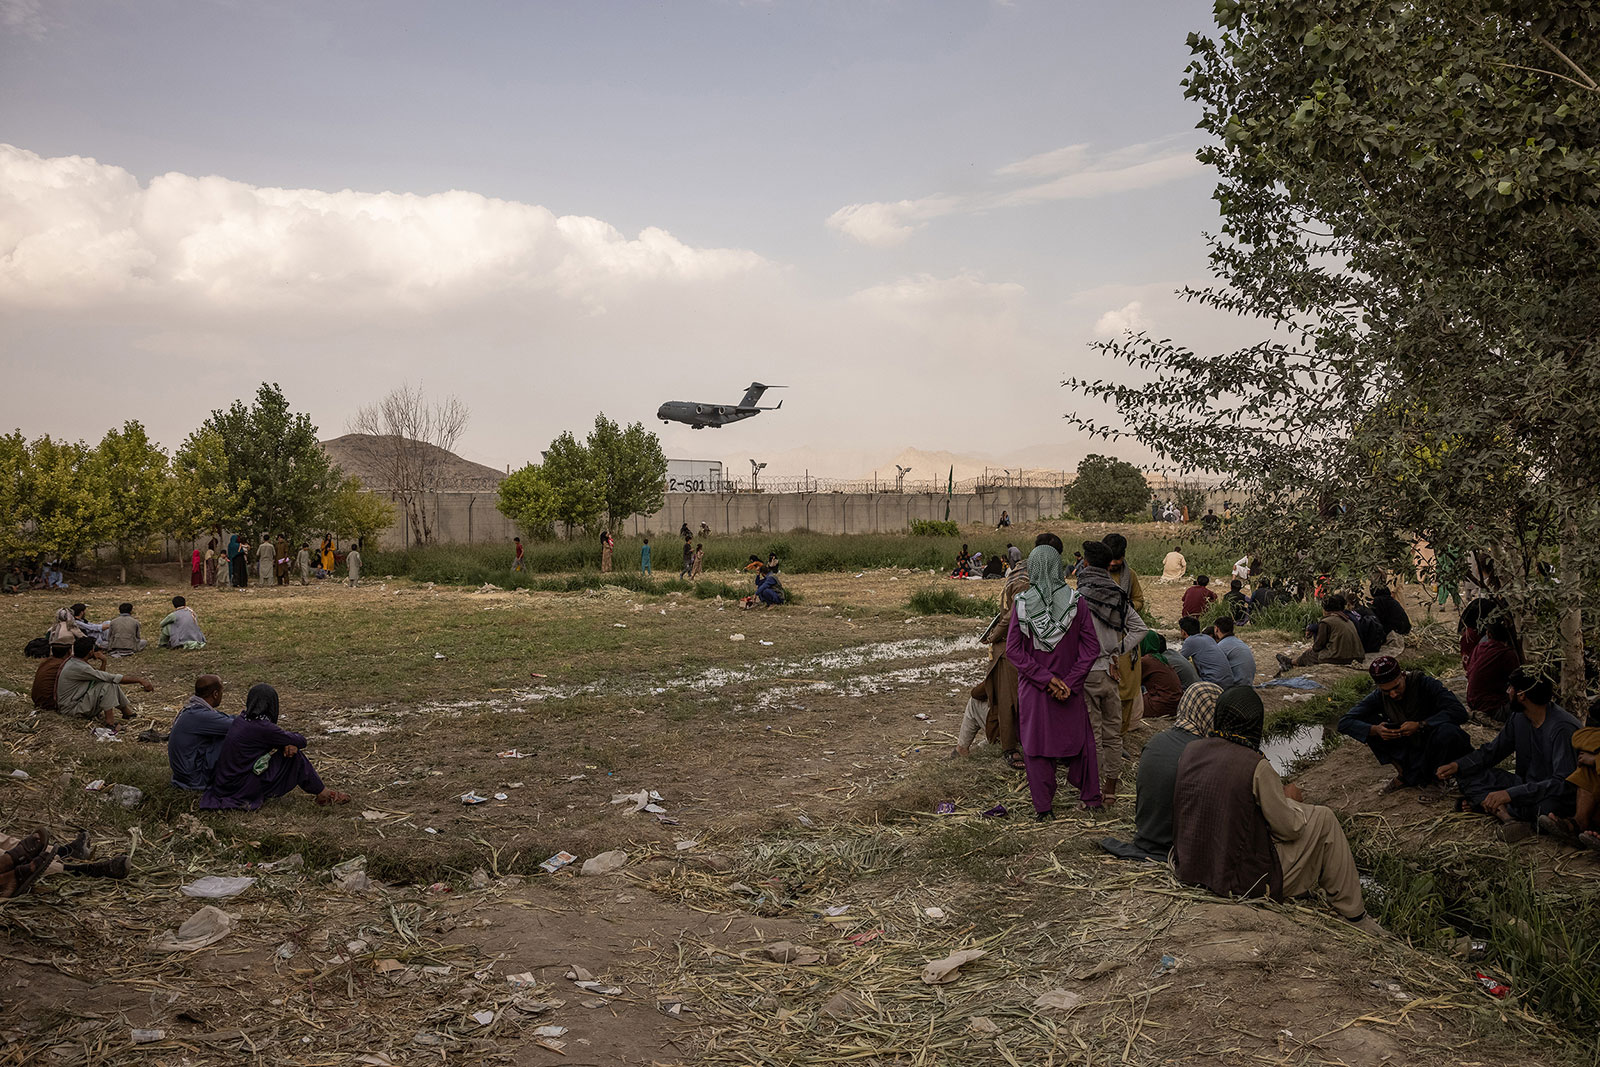 An American military transport plane lands at Hamid Karzai International Airport in Kabul, Afghanistan, on August 22.